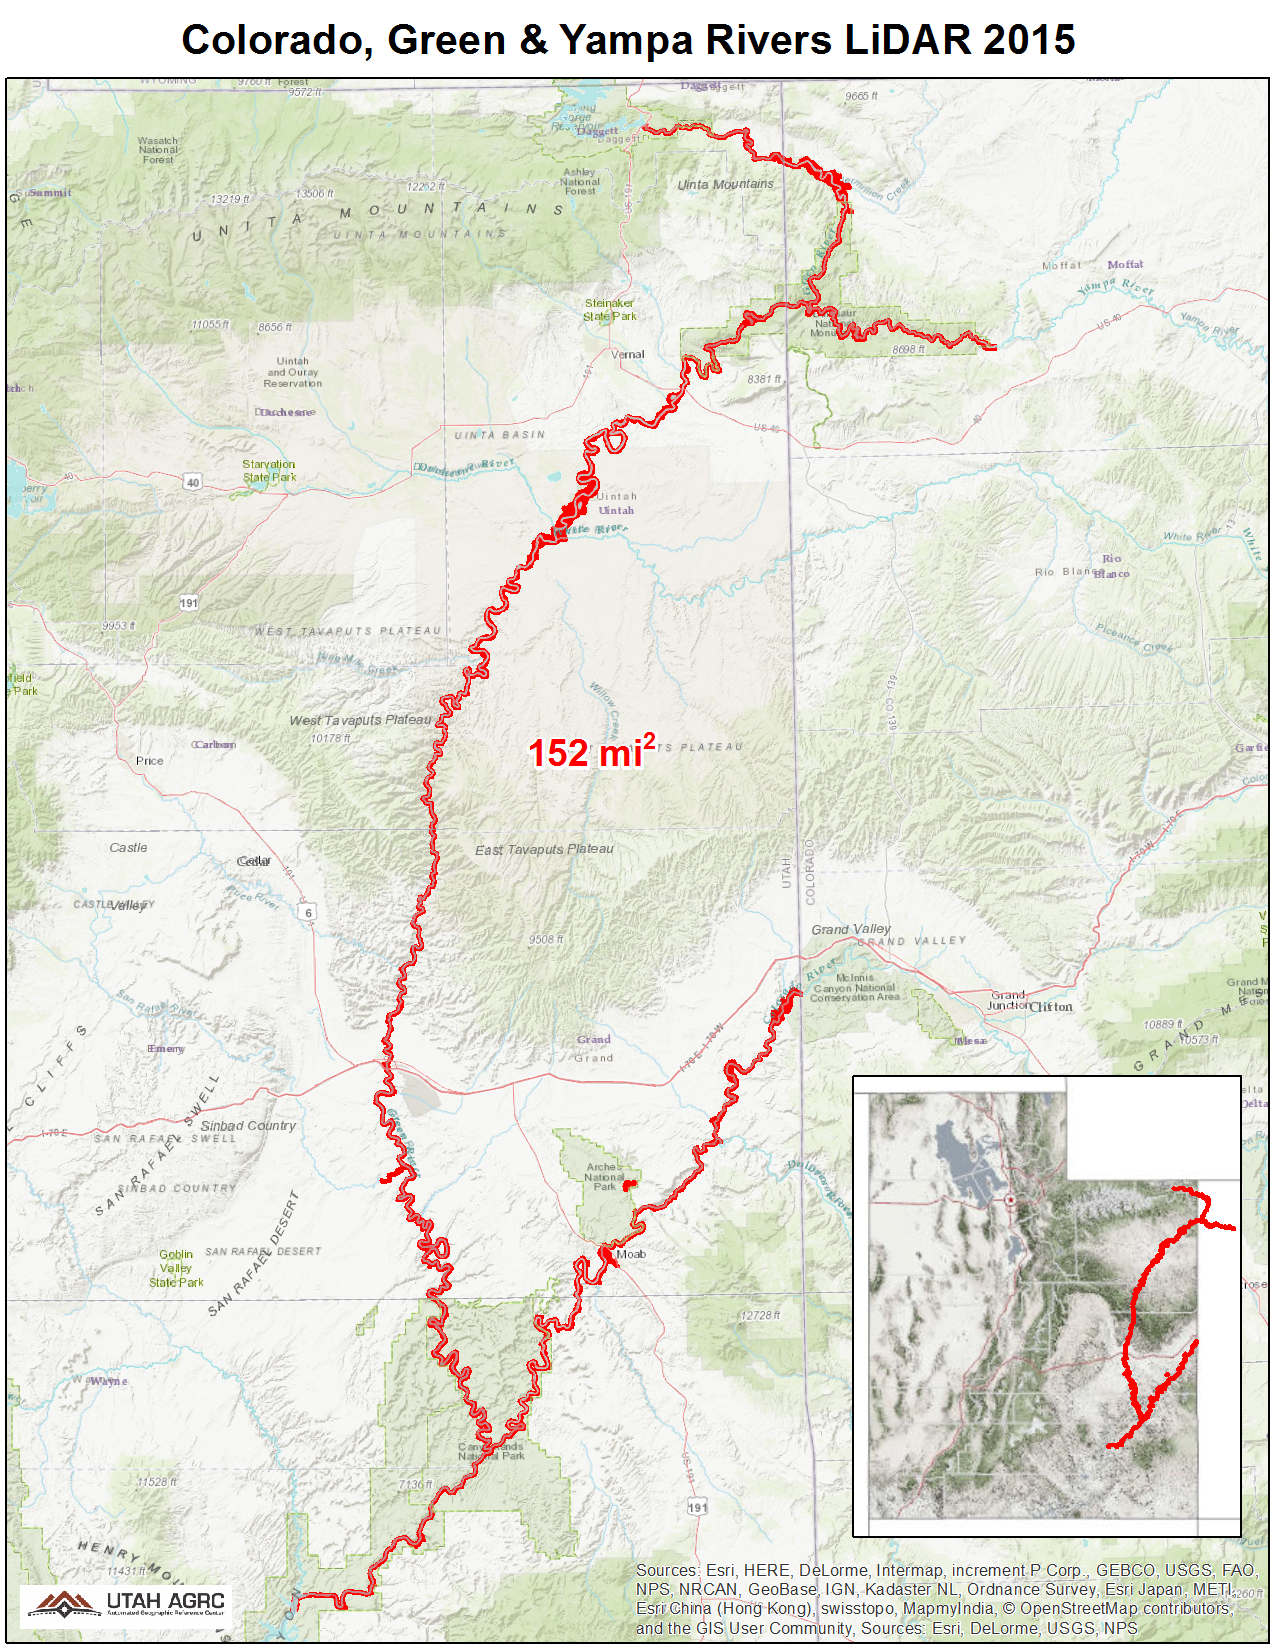 2015 Colorado, Green, and Yampa Rivers LiDAR Elevation Data on burning river 100 course map, la plata river map, colorado map, green river, florence river map, durango river map, castle rock, moffat county, steamboat springs, adams county, dinosaur national monument, rye river map, pa grand canyon river map, lochsa river map, mead river map, uncompahgre river map, san juan river, conejos river map, avon river map, summit county, mineral county, arkansas river map, san juan county, gunnison river, colorado river, windsor river map, animas river, roaring fork river, dolores river, duchesne river map, morgan county, san juan river map, colo river map, pueblo river map,